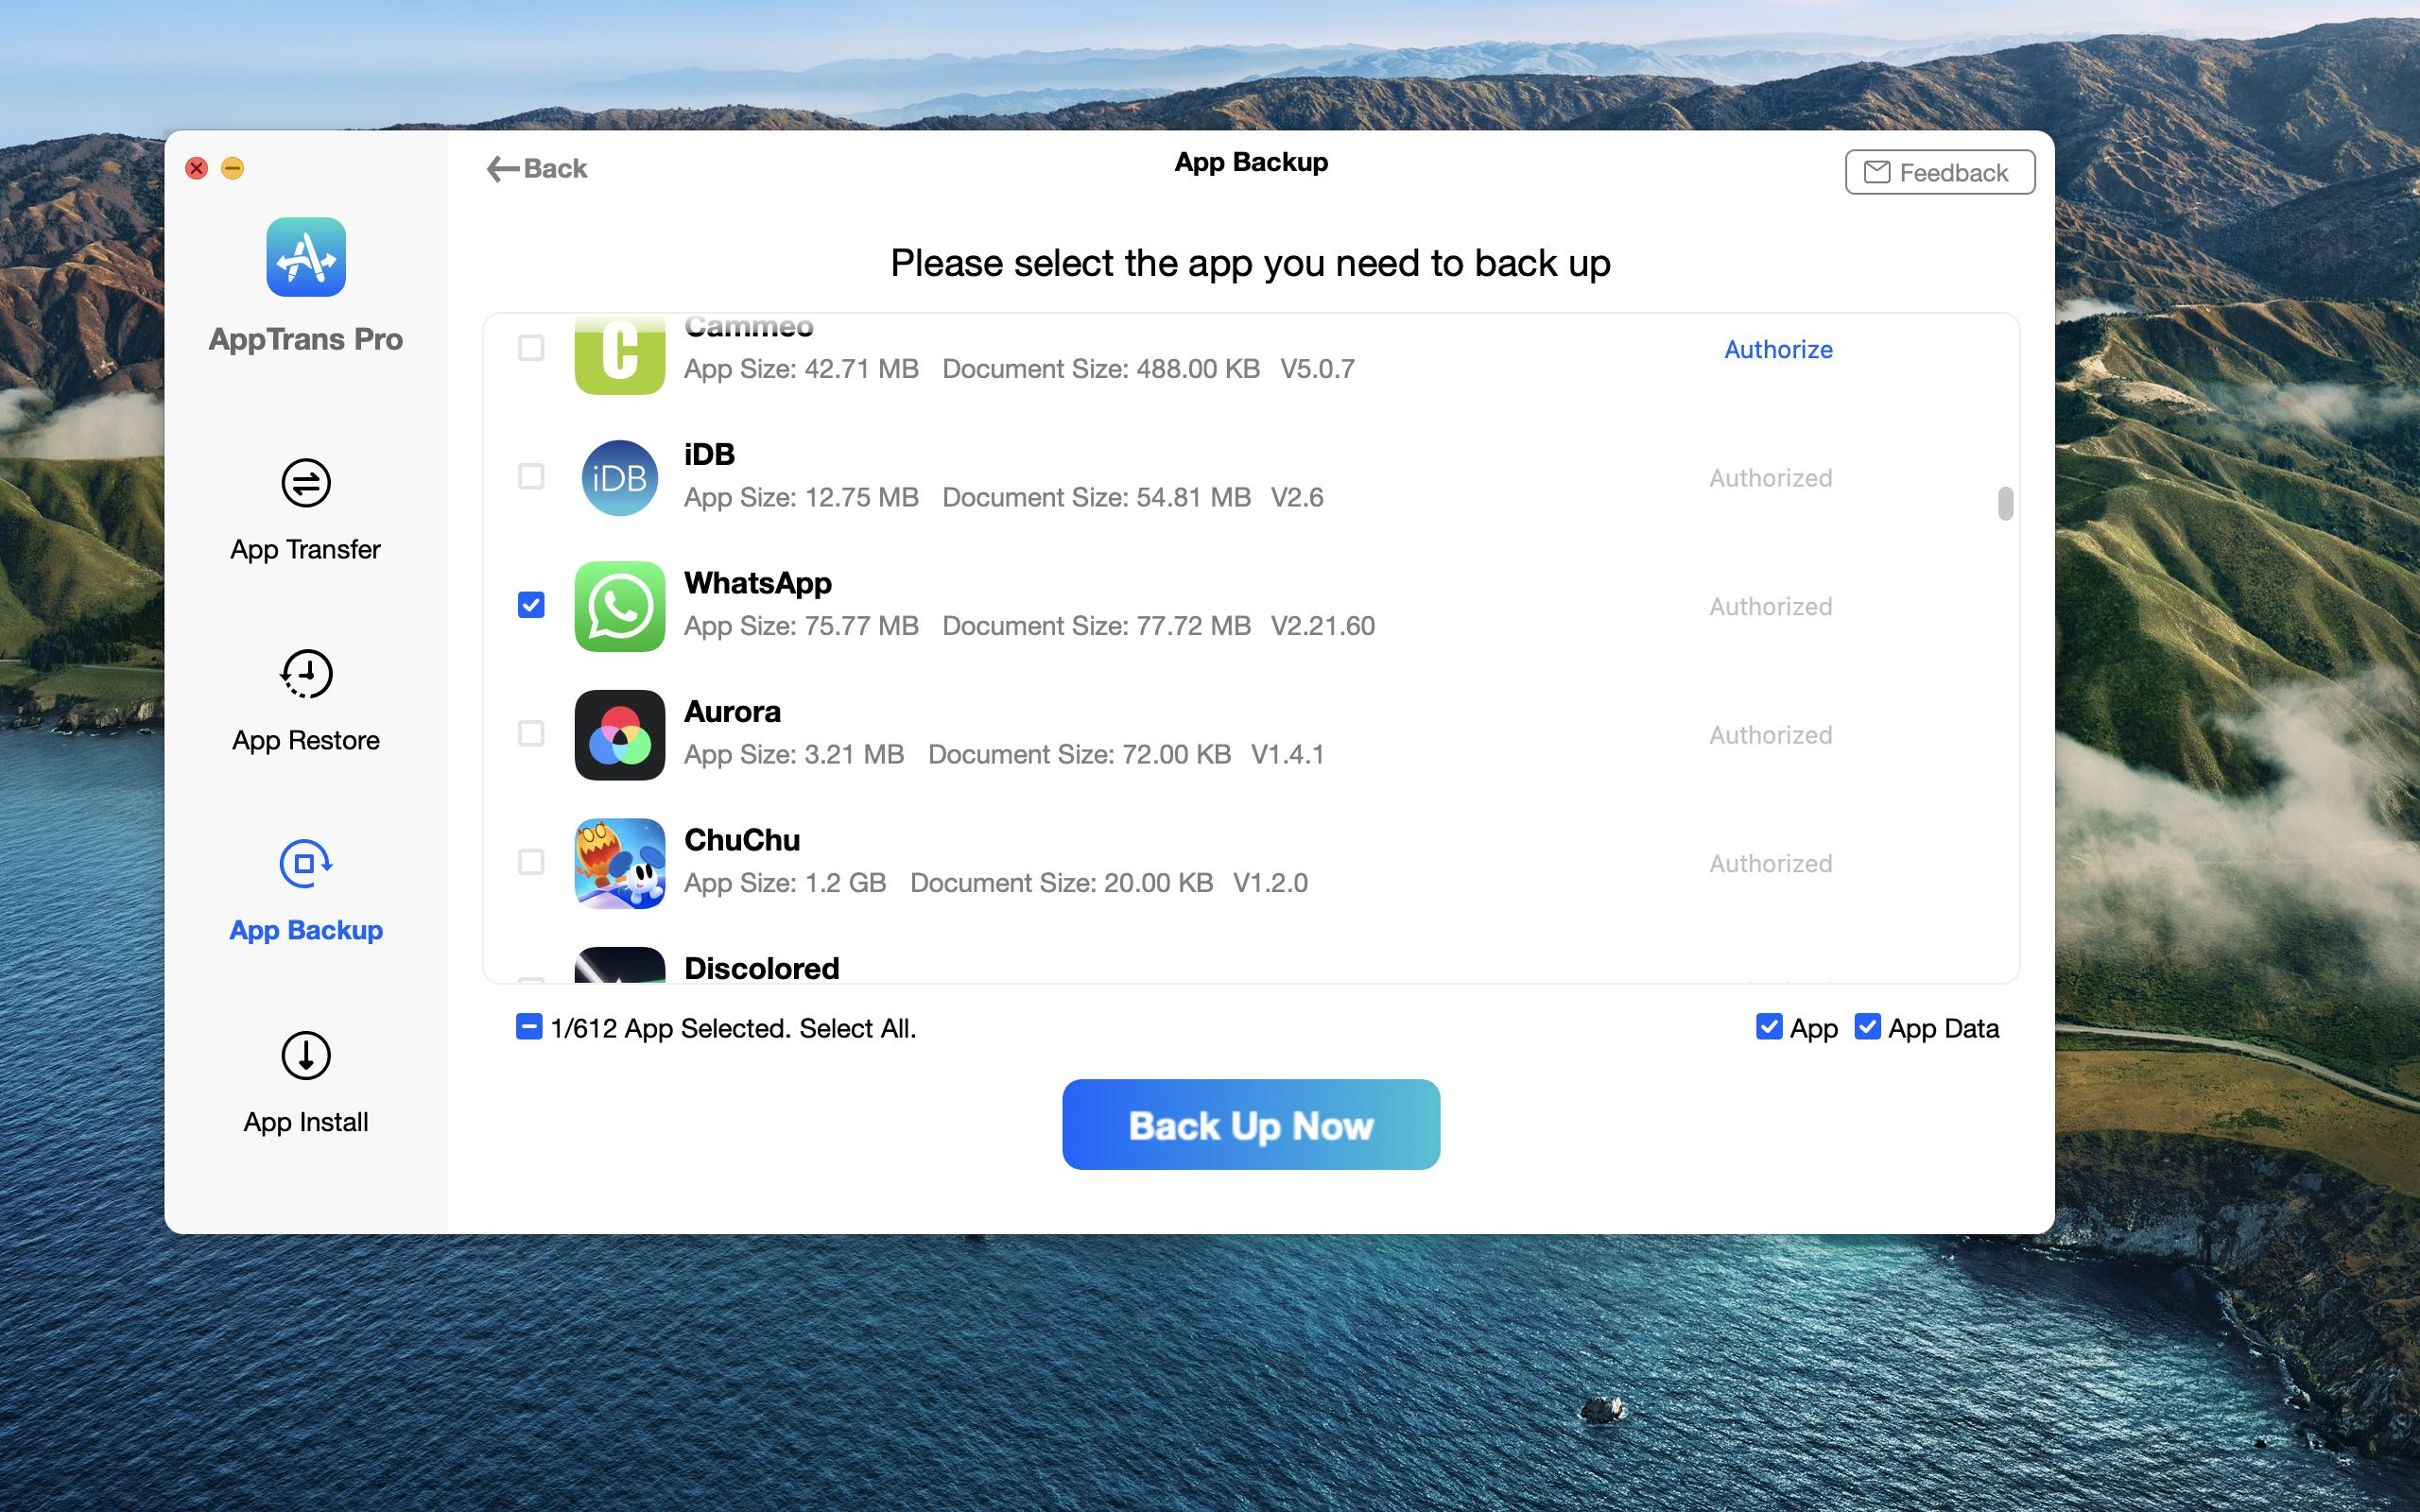 A screenshot showing the App Backup function in the AppTrans app for macOS from iMobie